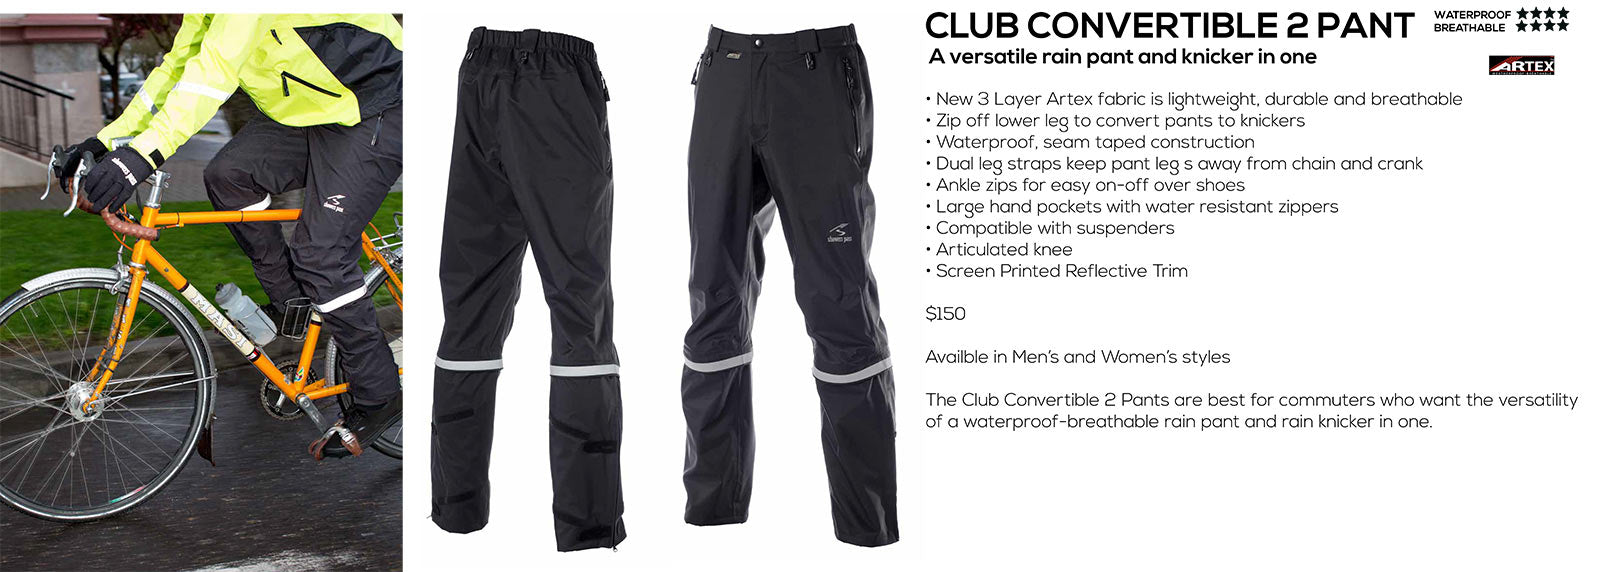 How to Choose the Best Rain Pants?